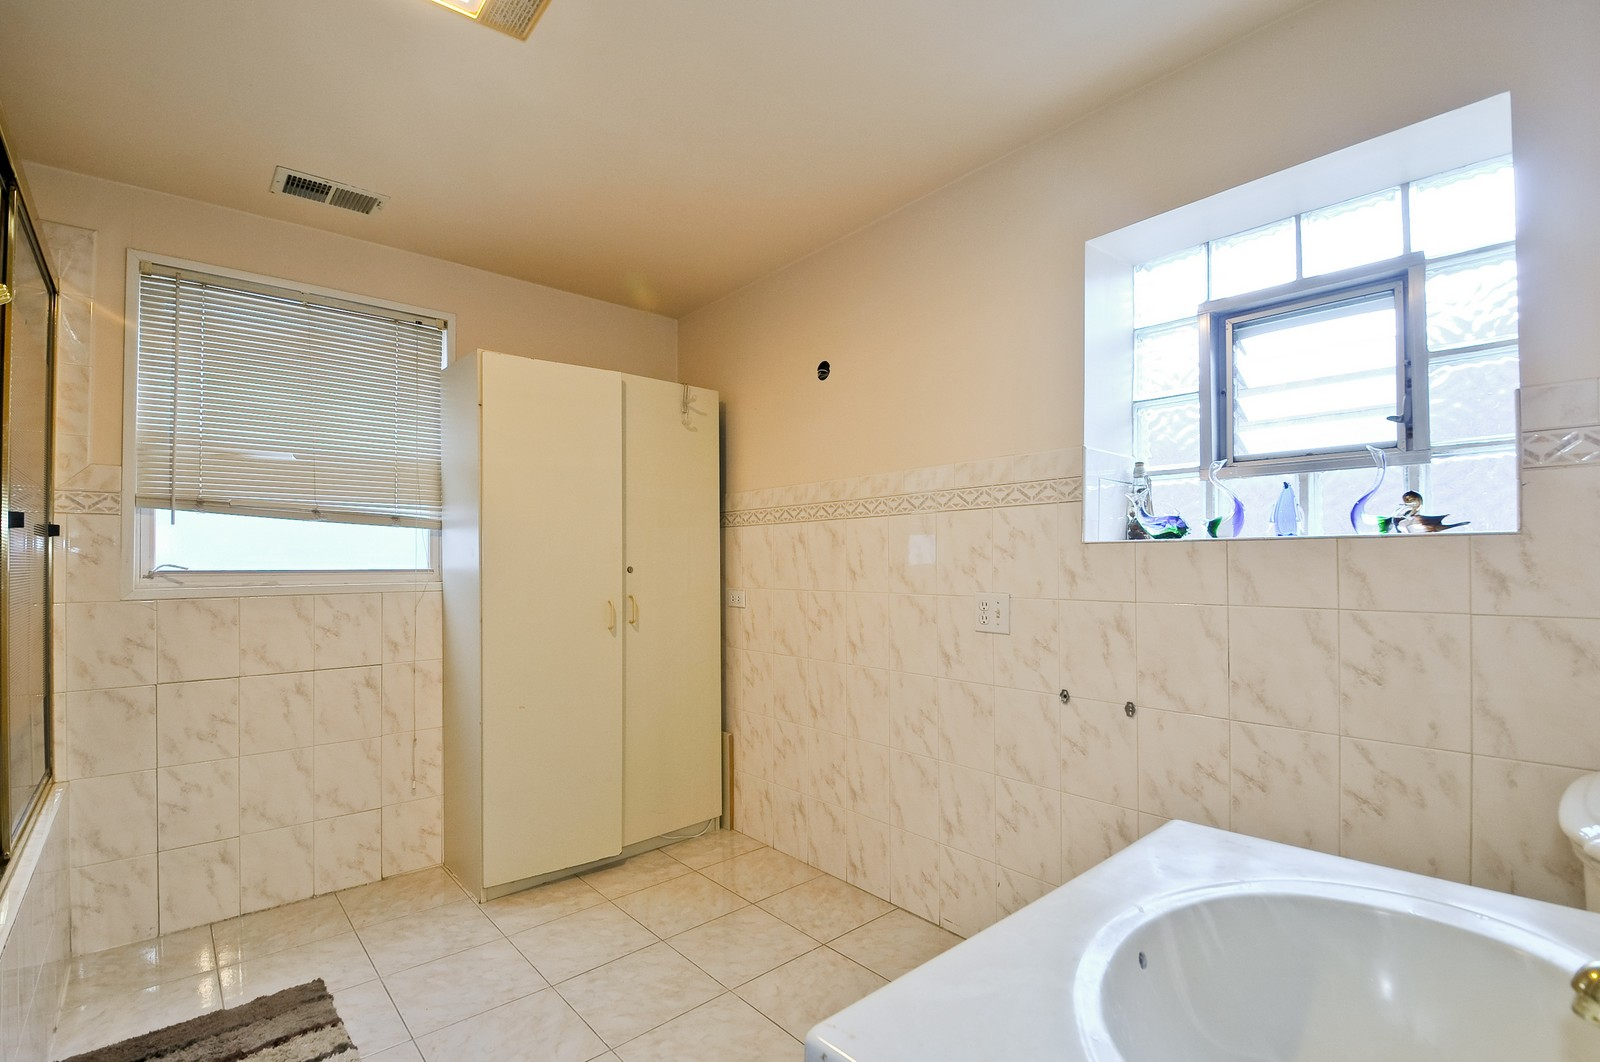 Real Estate Photography - 6605 N Whipple St, Chicago, IL, 60645 - Master Bathroom